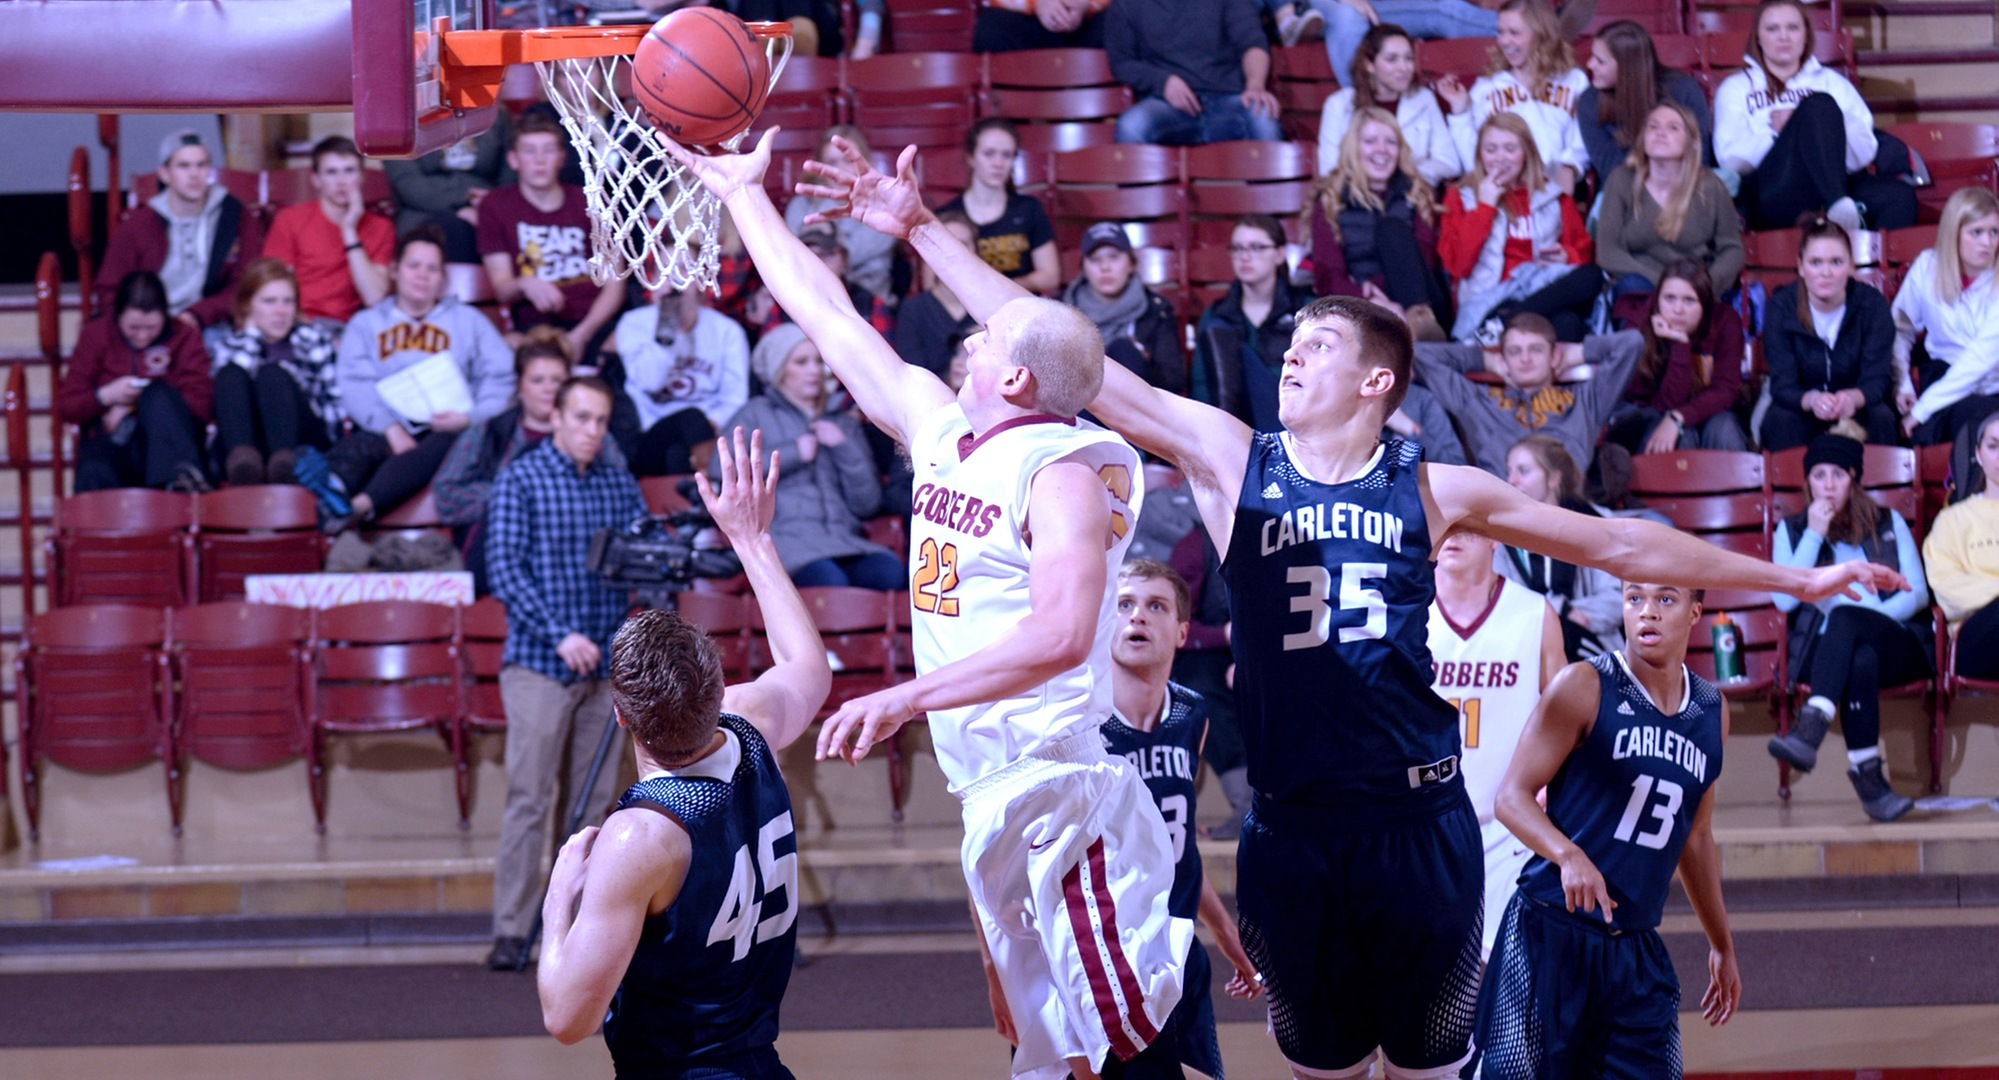 Junior Dawson Peterson drives to the basket to lay in two of the Cobbers' 63 points in CC's eight-point win over Carleton.